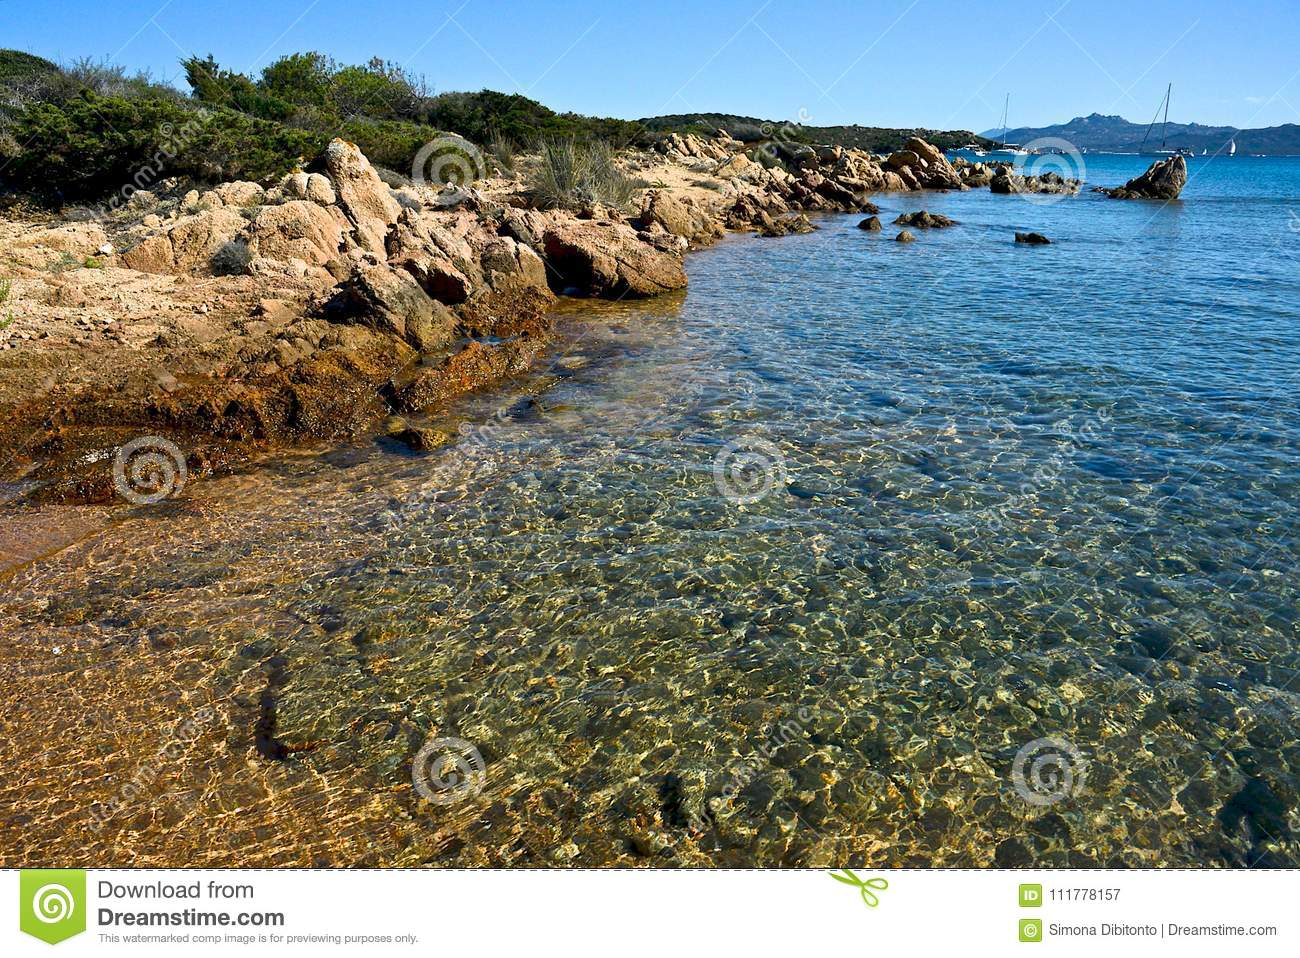 Wild nature seascape with blue water, sandy beach with some rocks